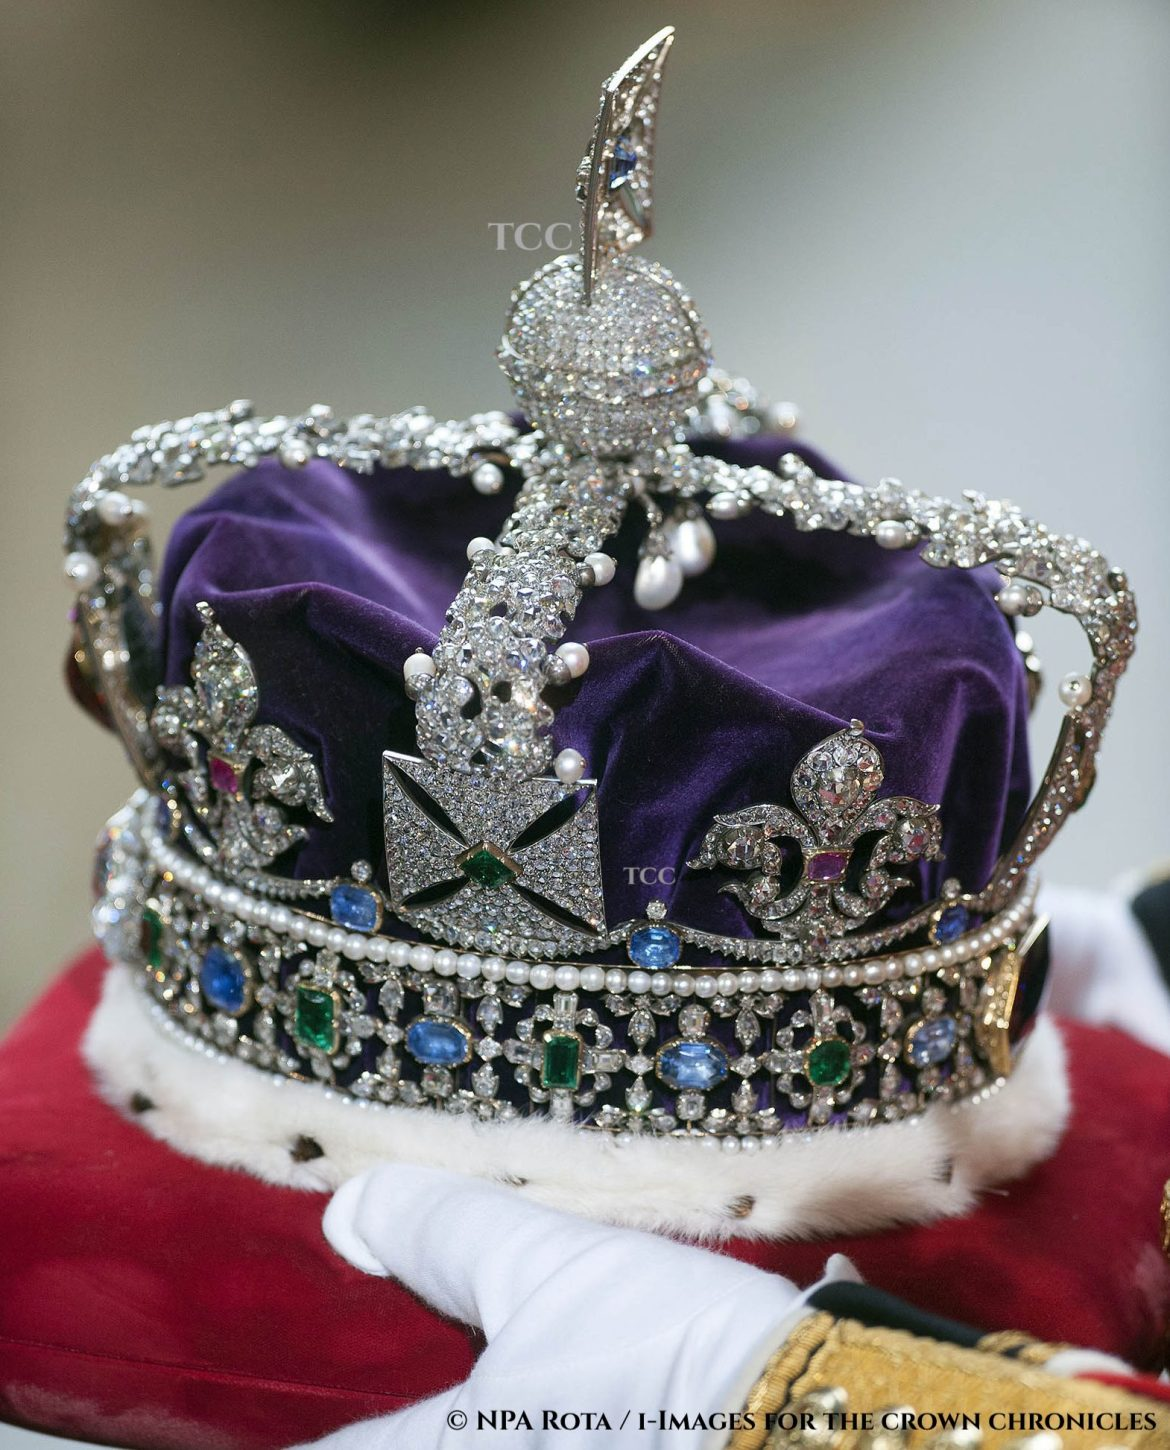 a close up view of the imperial state crown with a velvet purple cap, ermine trimmed band, with two arches that cross in the centre, formed in oak leaves and pearl acorns. fleur de lis and cross pattee shapes sit atop a friezework band of diamonds, studded with emeralds and sapphires